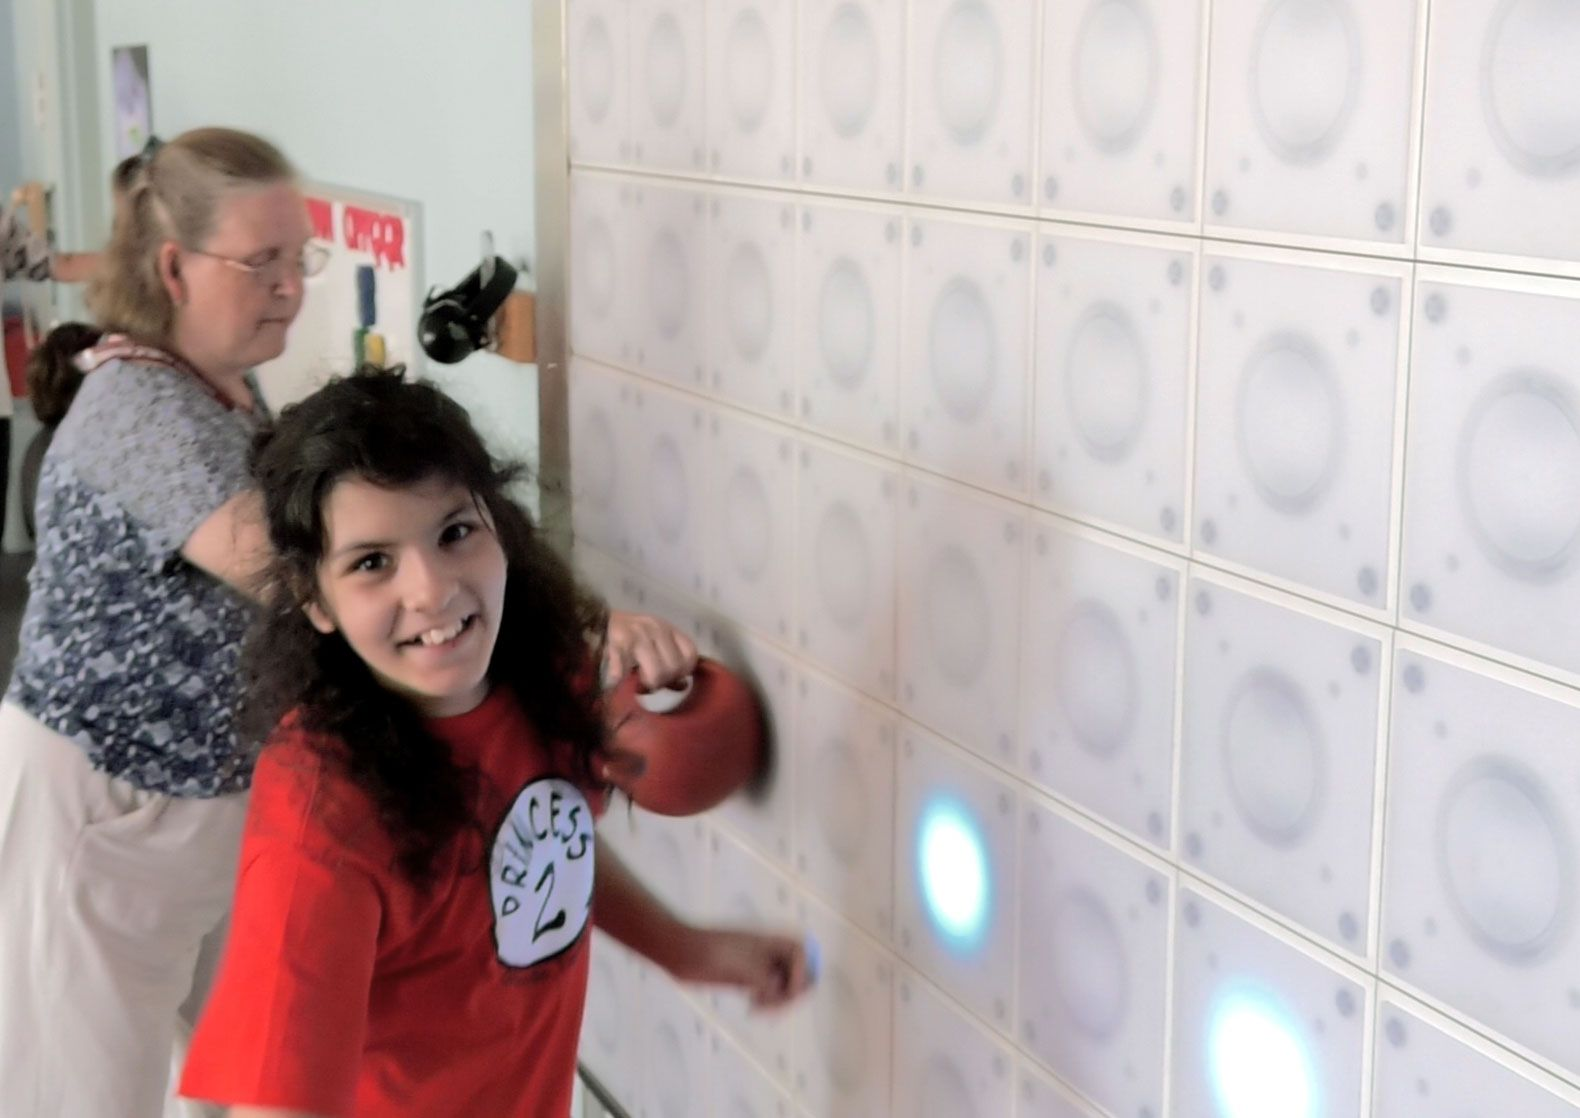 A student at Hanover Elementary works at the light wall to improve her sense of where her body is in relation to other people and objects.